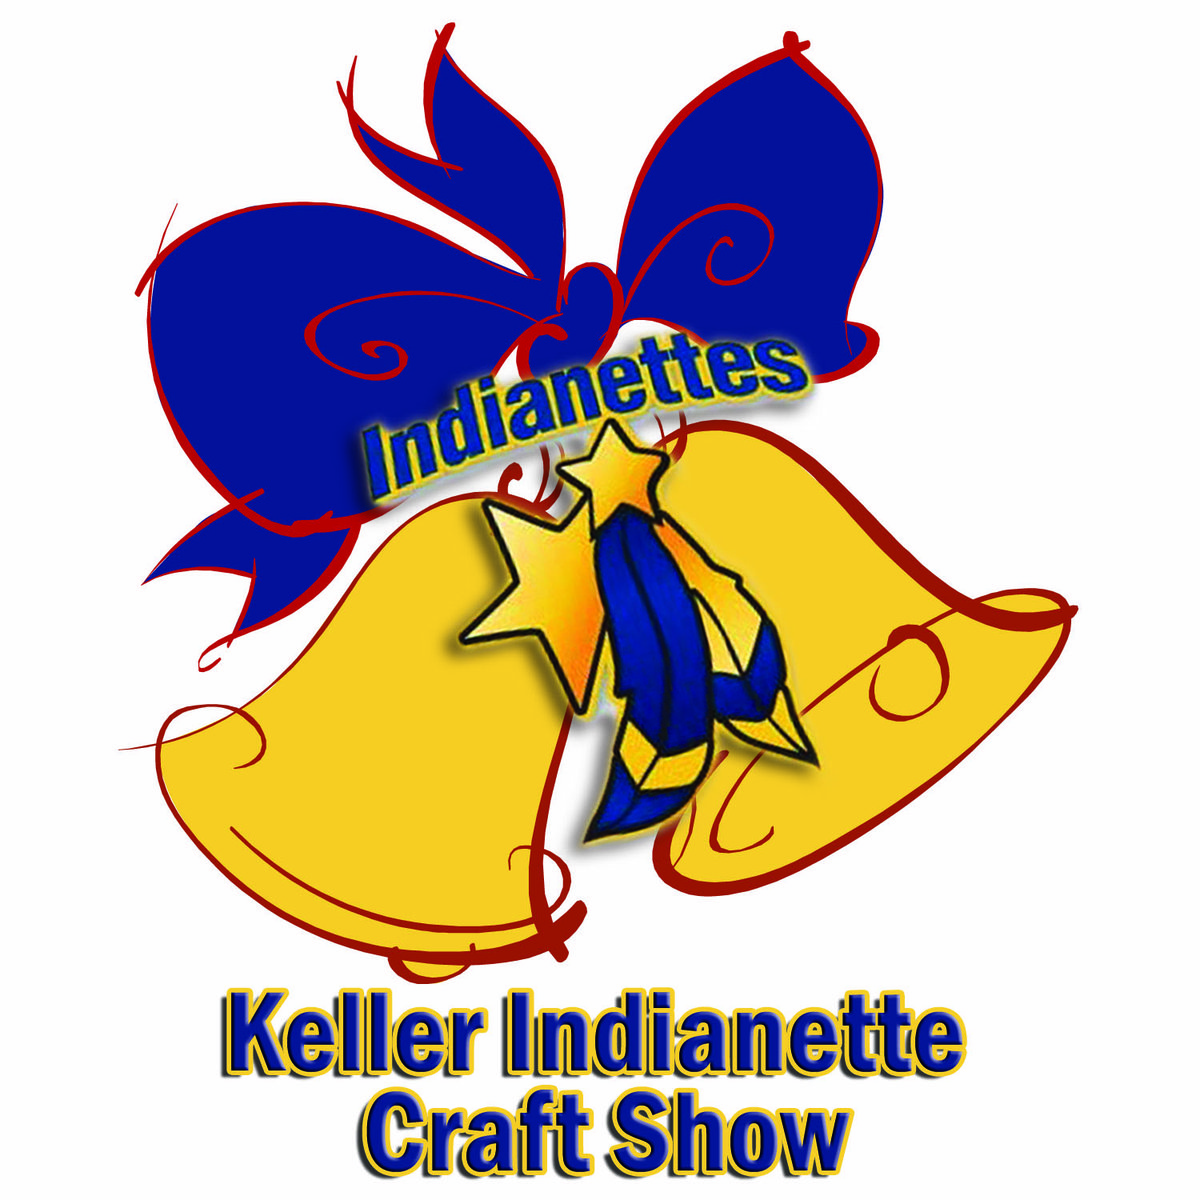 Keller Indianette 2020 Christmas Craft Fair Keller High School Indianettes Annual Craft Show   Southlake Style